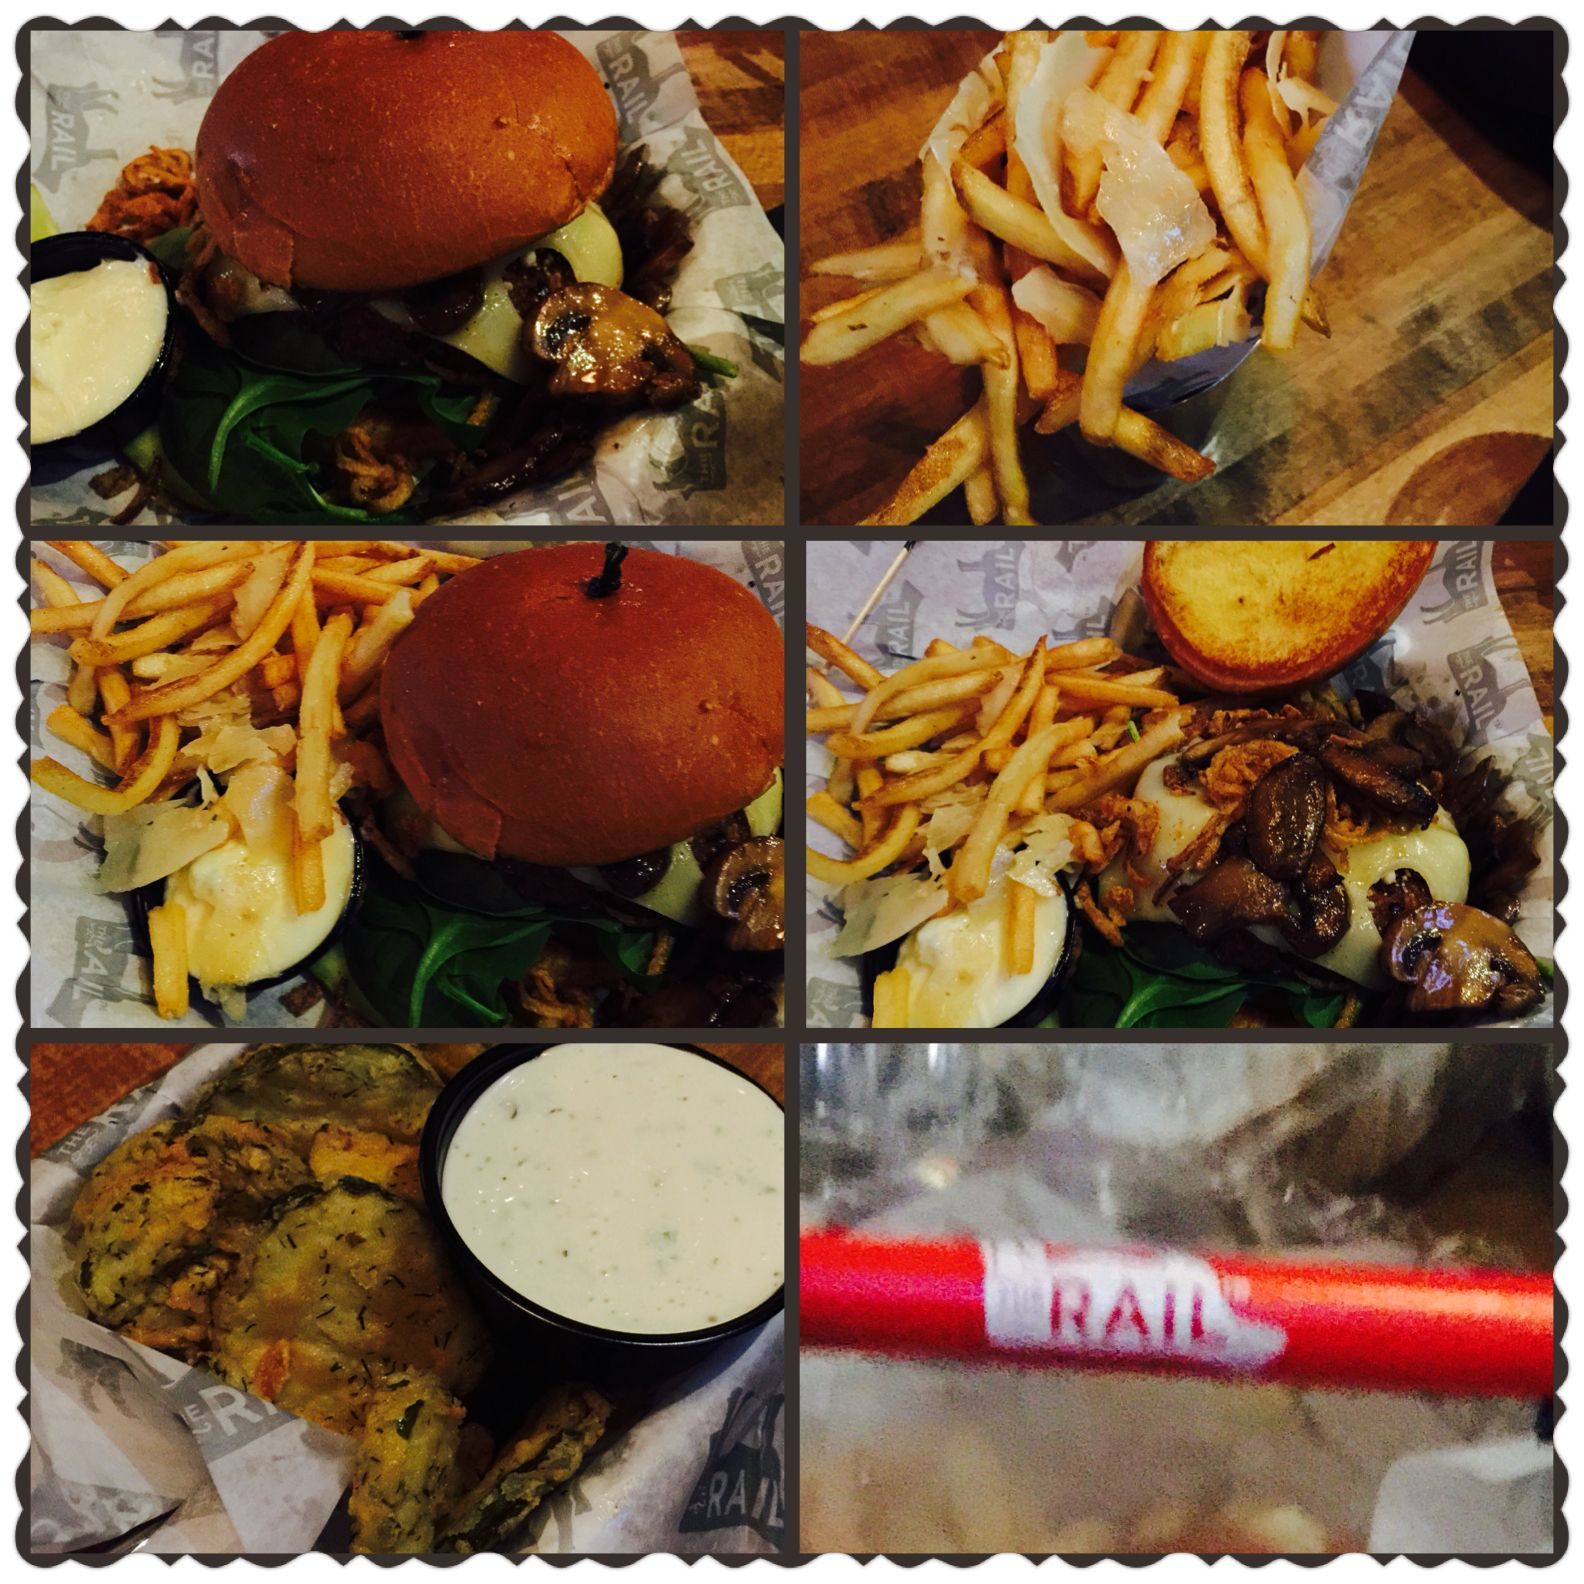 Veggie Burger From The One And Only Therail Restaurant Here In Canton We Paired It With Some Truffle Fries And Some Fried Truffle Fries Veggie Burger Food